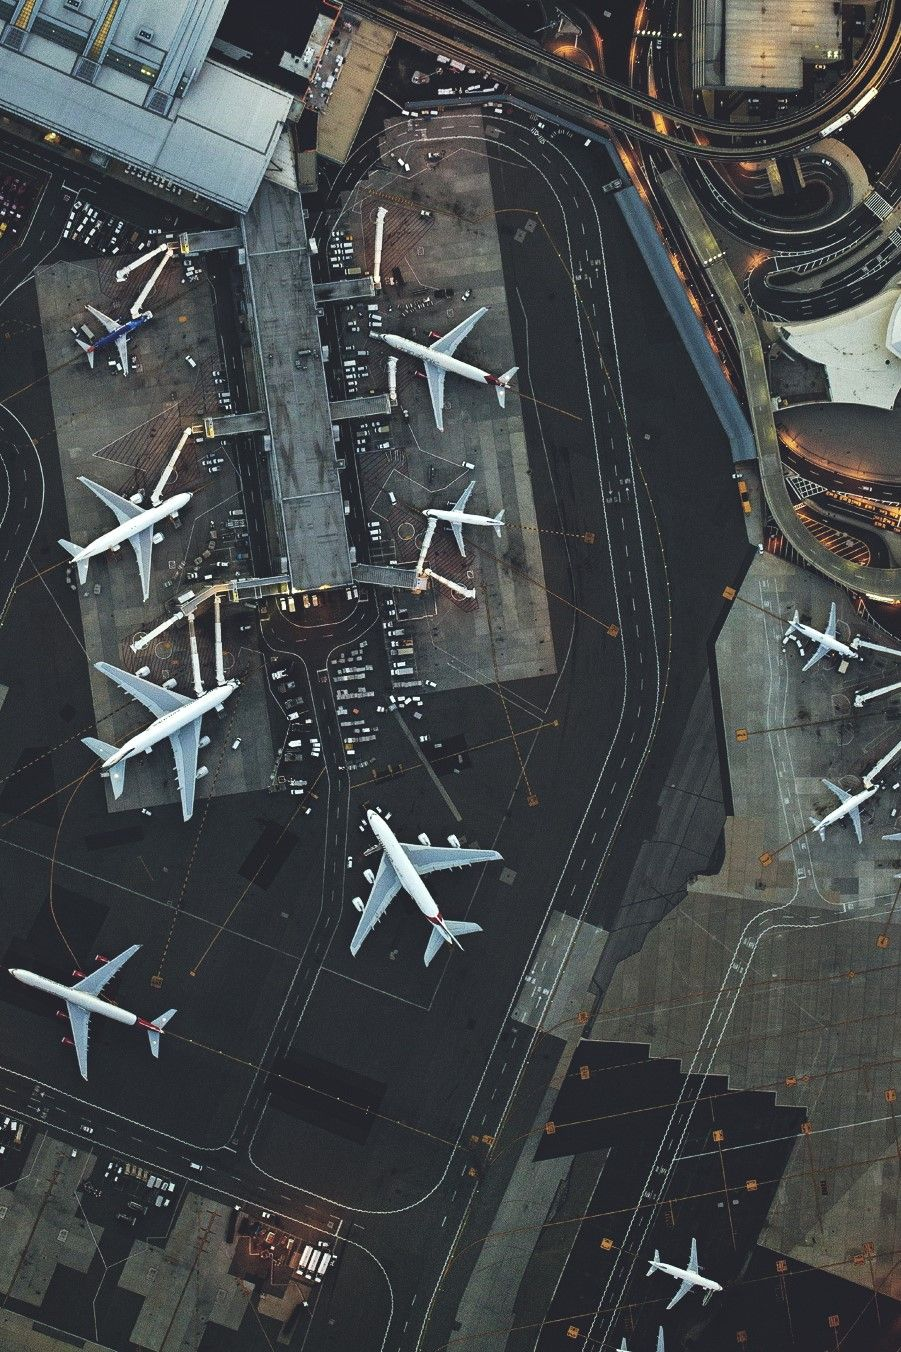 Map Usa States Airports%0A   Whenever I get gloomy with the state of the world  I think about the  arrivals gate at Heathrow Airport    topdown perspective bird u    seye view  overhead view